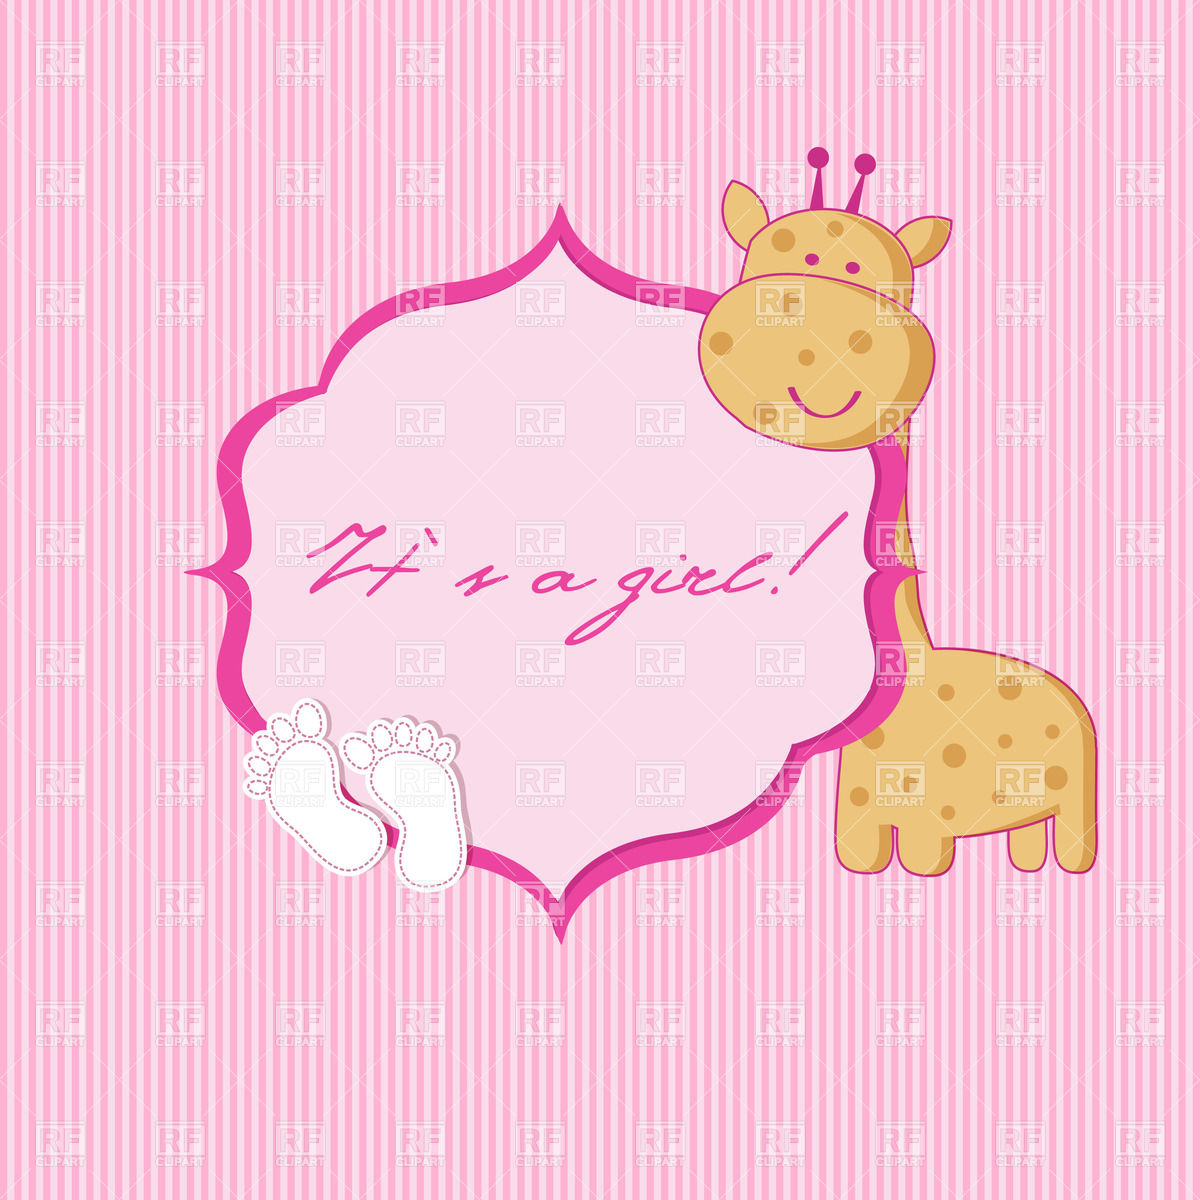 Baby Girl Birth Announcement Card With Cartoon Giraffe And Footprints